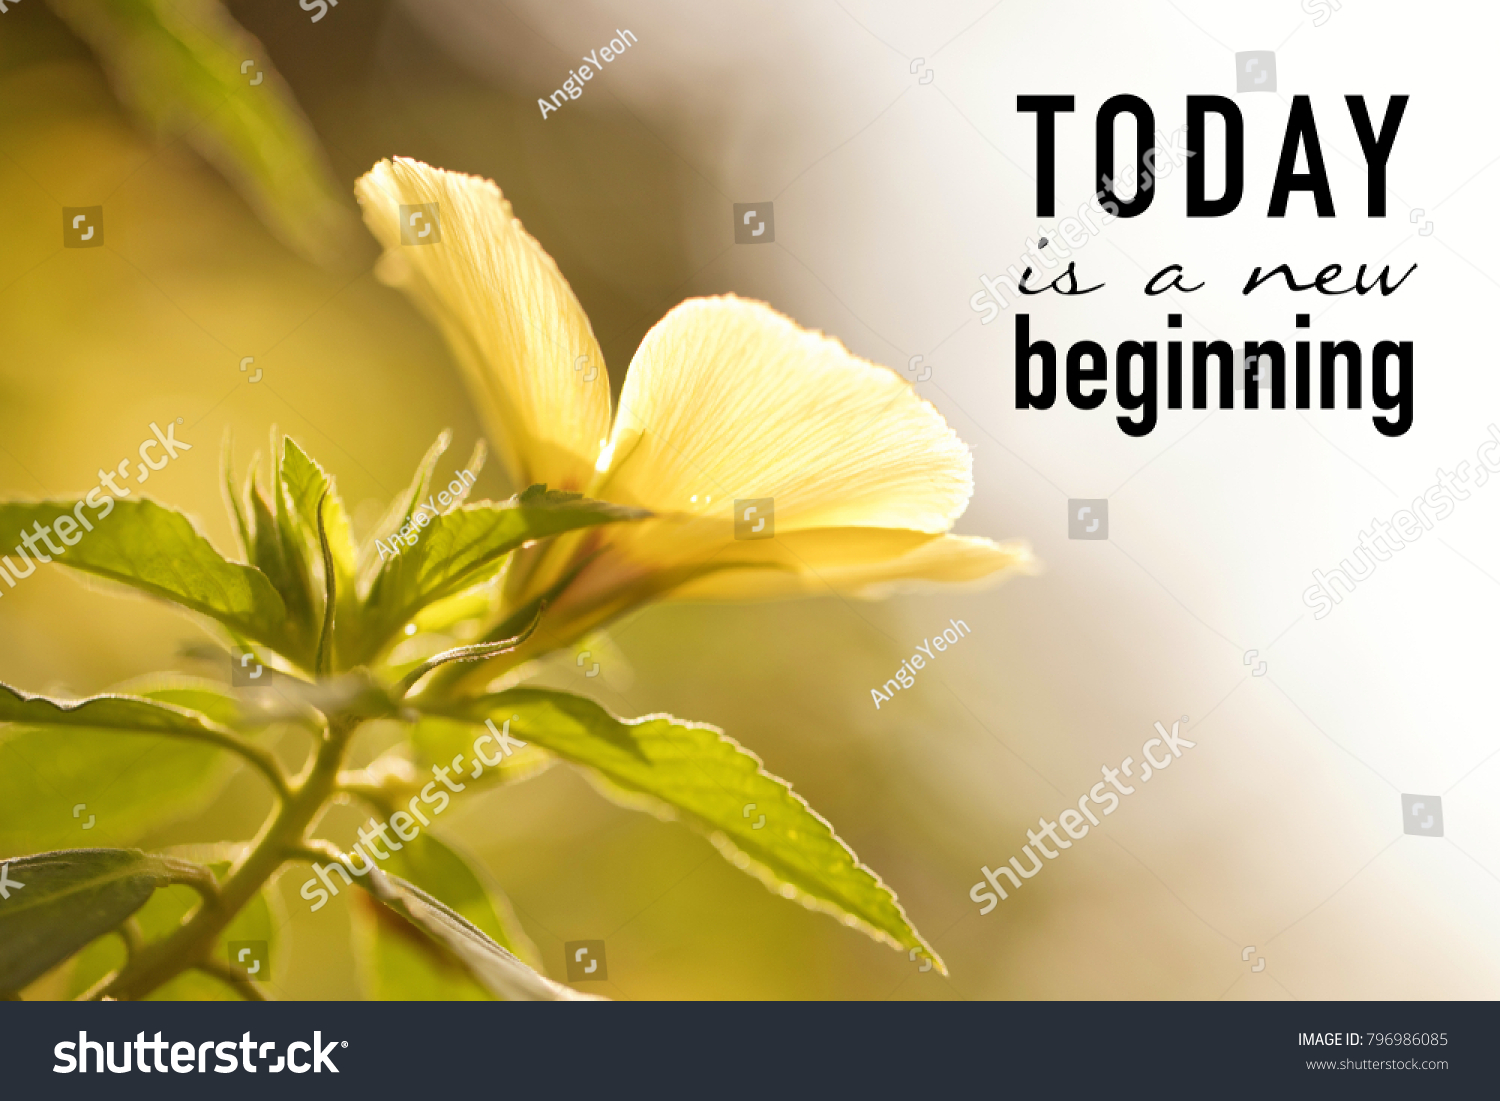 Inspirational Quote On Blurred Yellow Flower Stock Photo 100 Legal